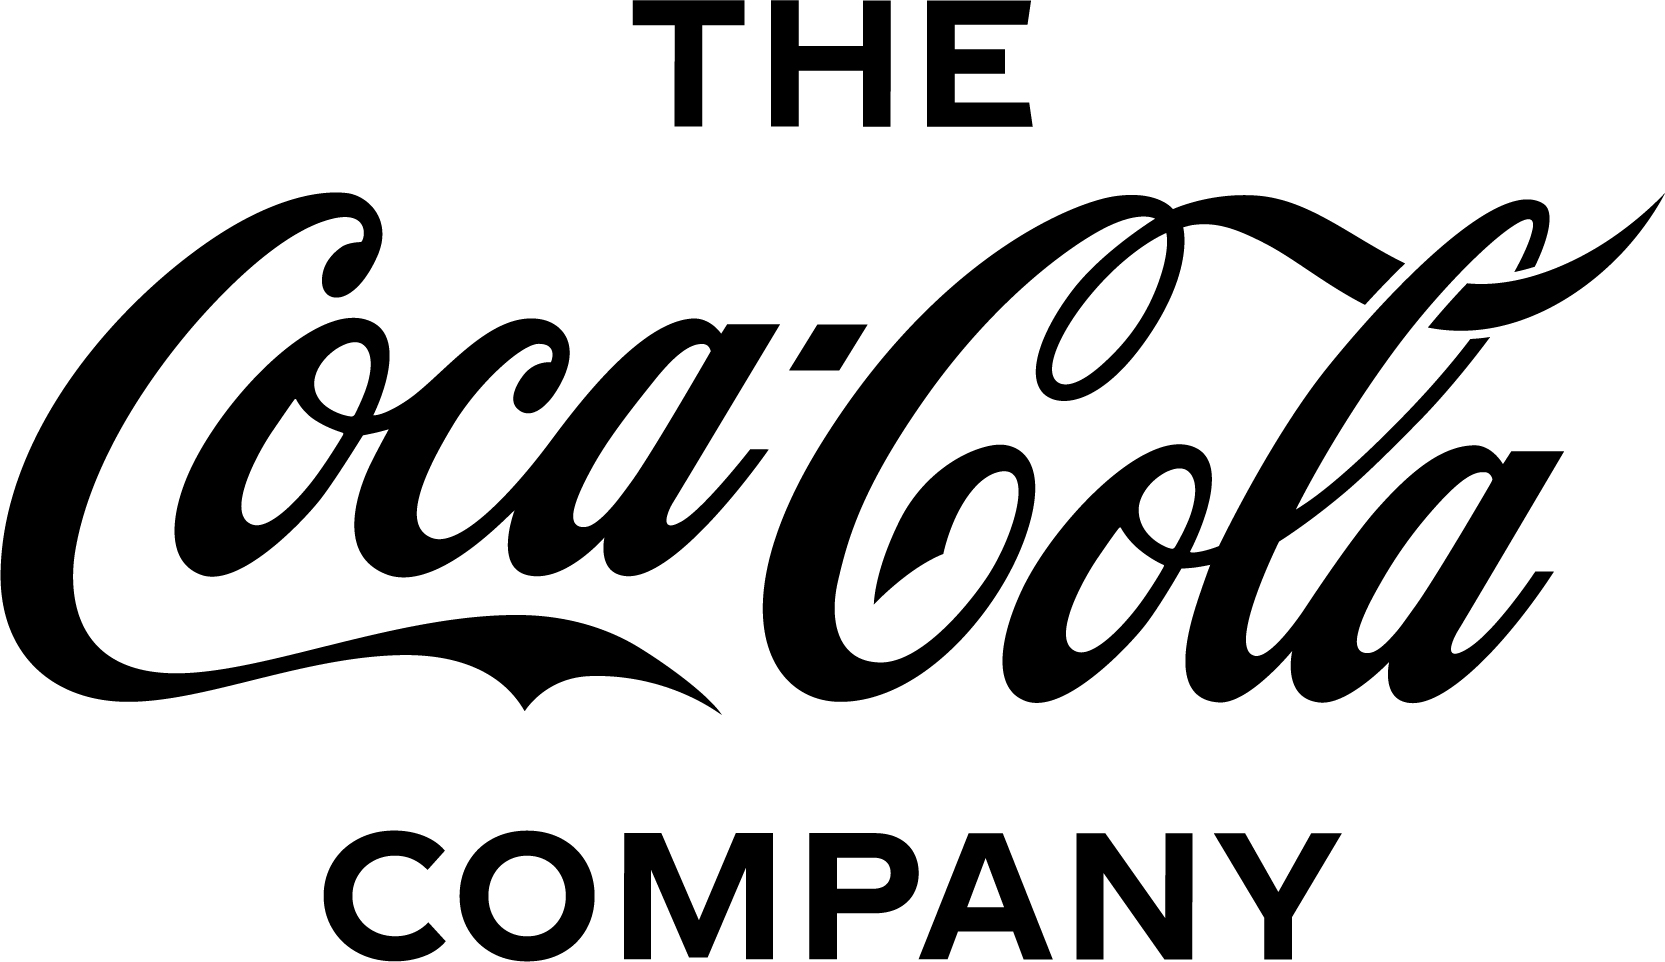 Coca-Cola Company (The)